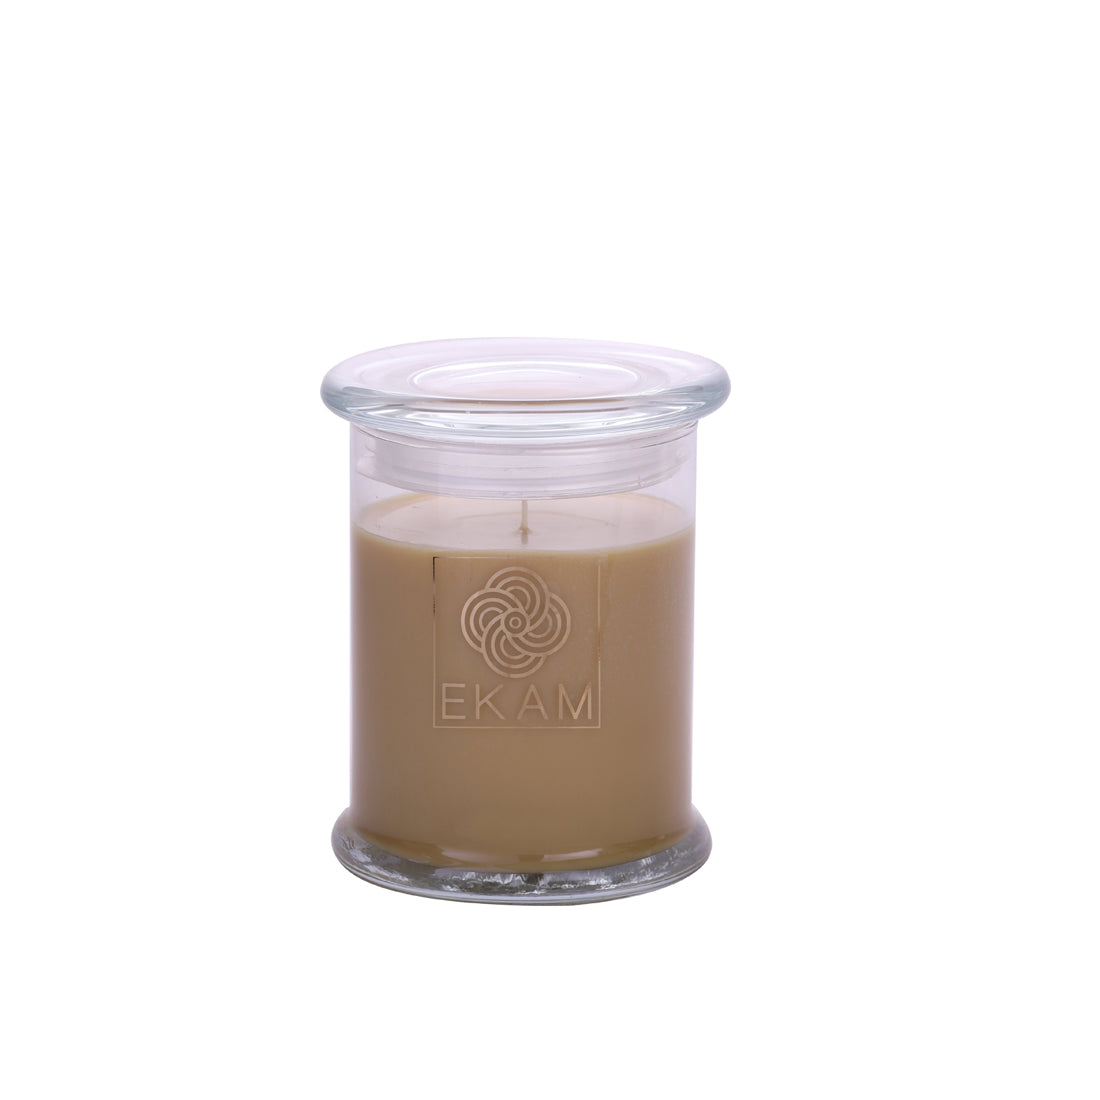 Ekam's Divine Sandalwood Scented Ring Jar Candle